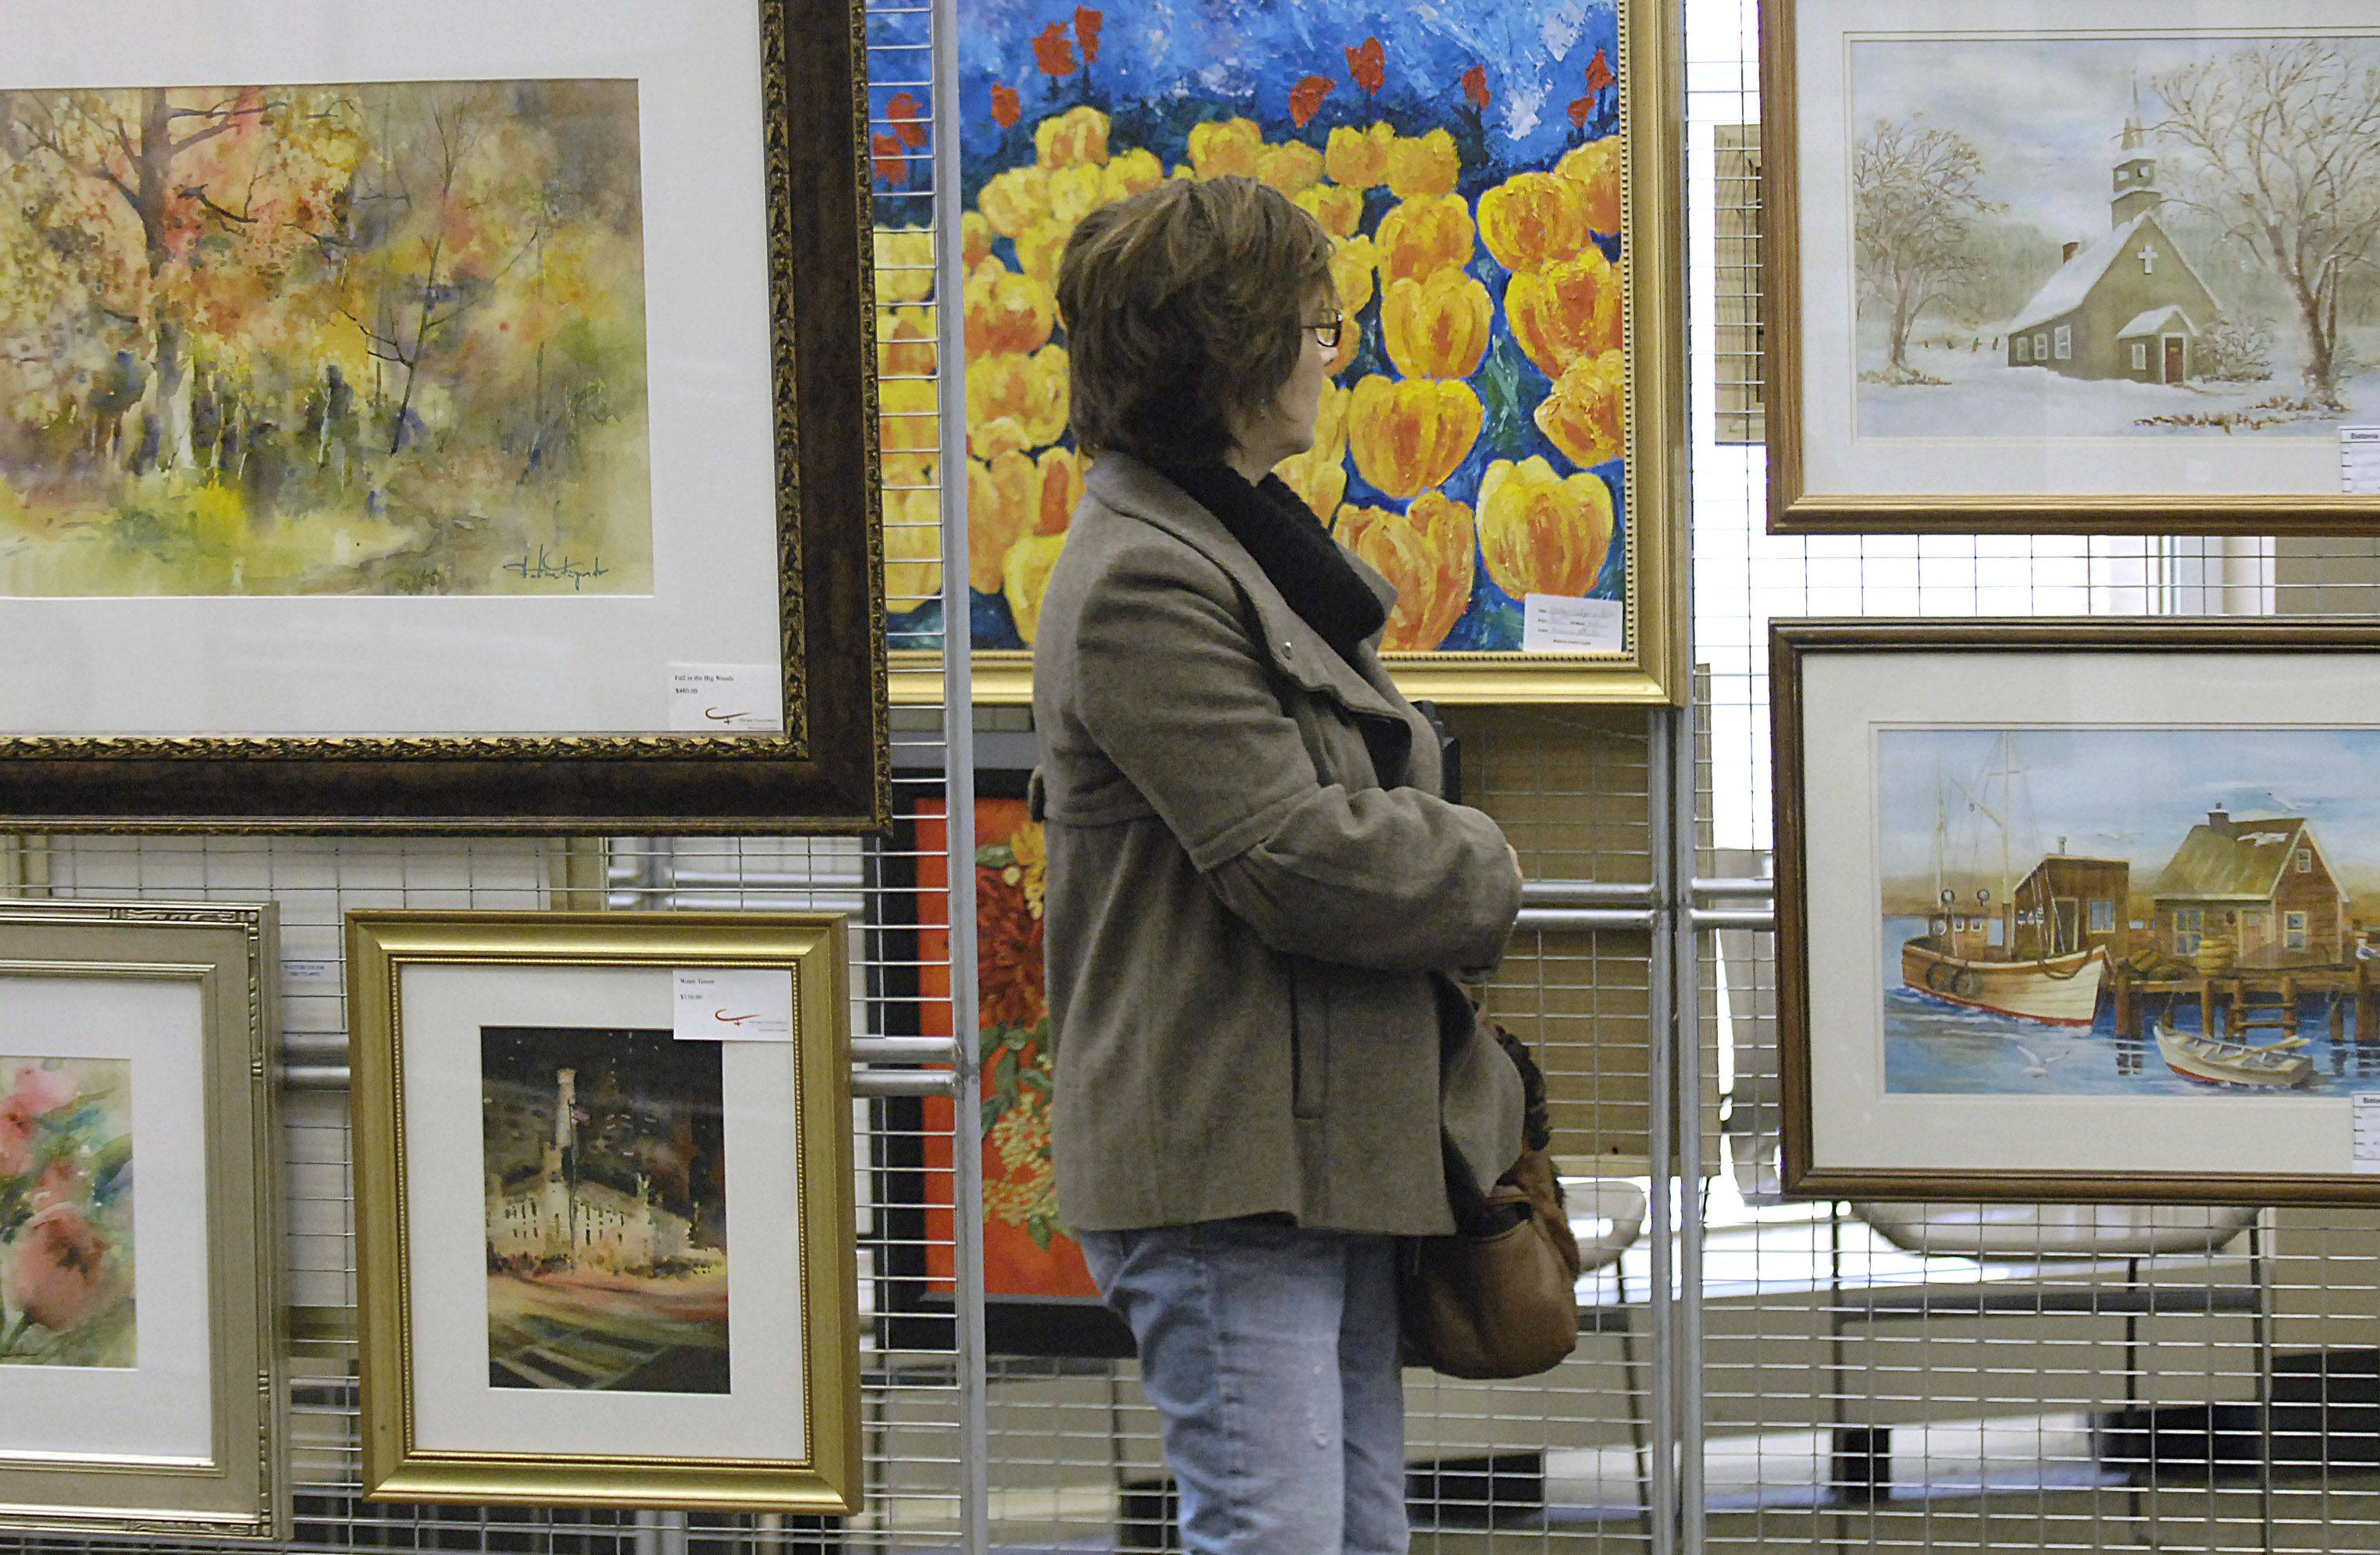 Trina Glass of North Aurora browses works by 20 Batavia Artists' Guild members on display at the Batavia Public Library on Saturday, November 20. The exhibition, which continues through Sunday from 12-4, features works of all different mediums.